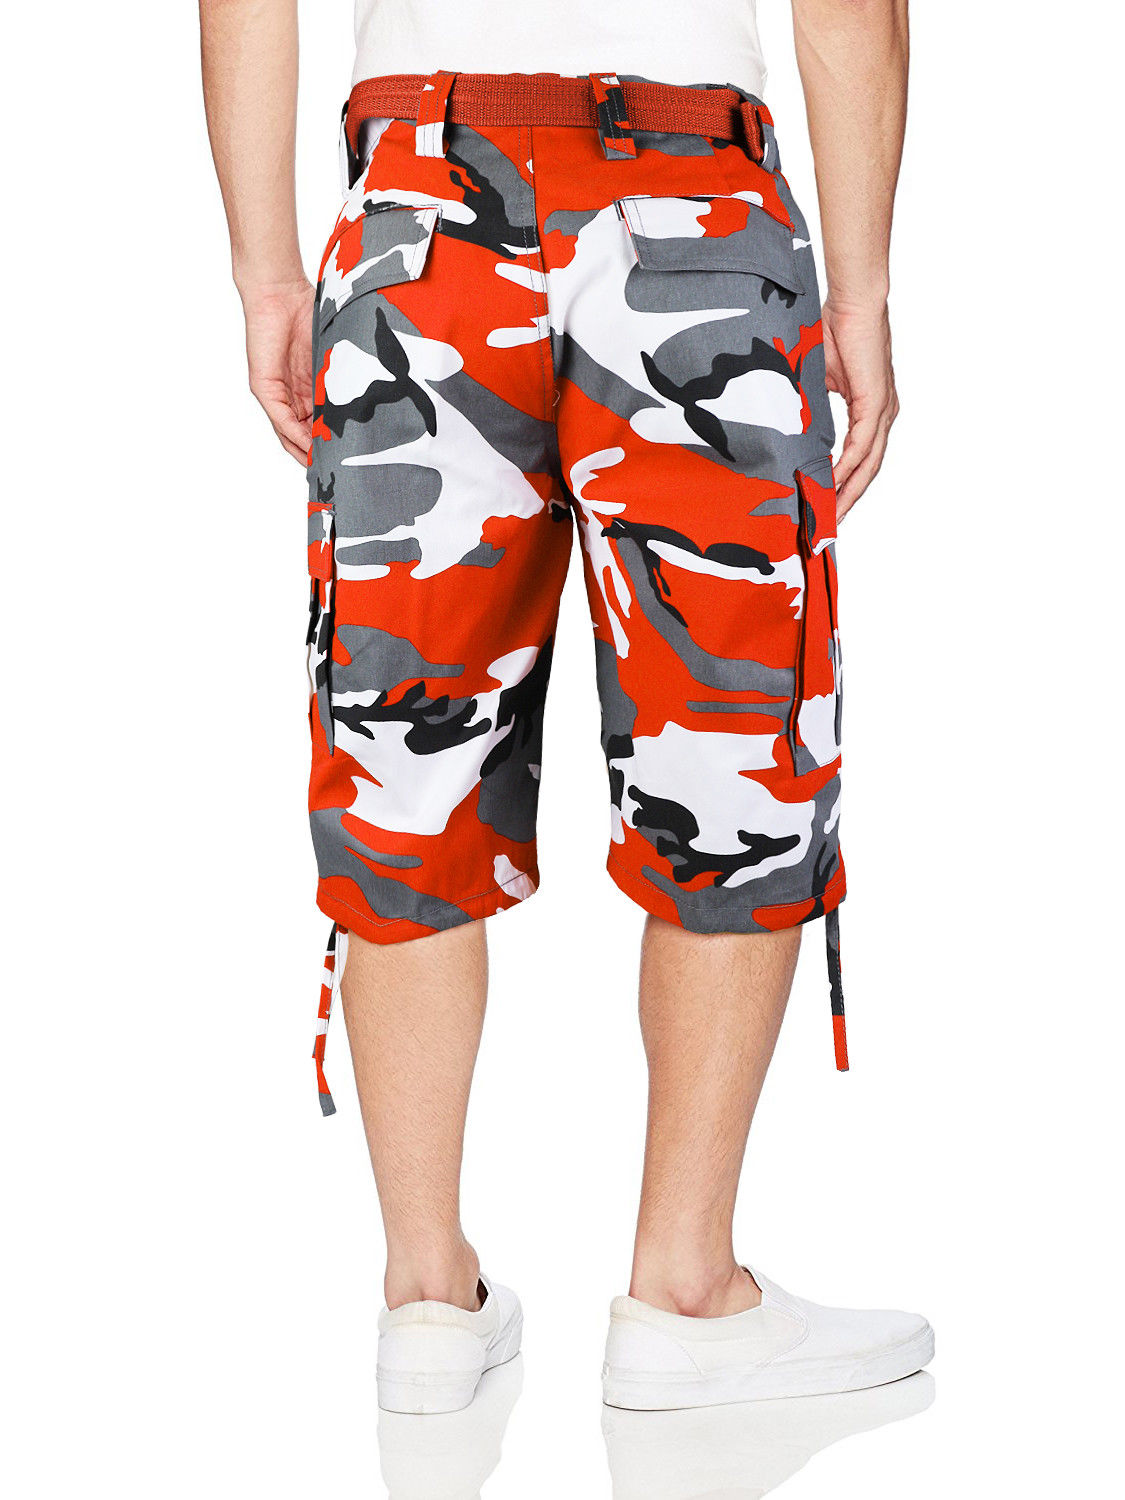 Men-039-s-Tactical-Military-Army-Camo-Camouflage-Slim-Fit-Cargo-Shorts-With-Belt thumbnail 19